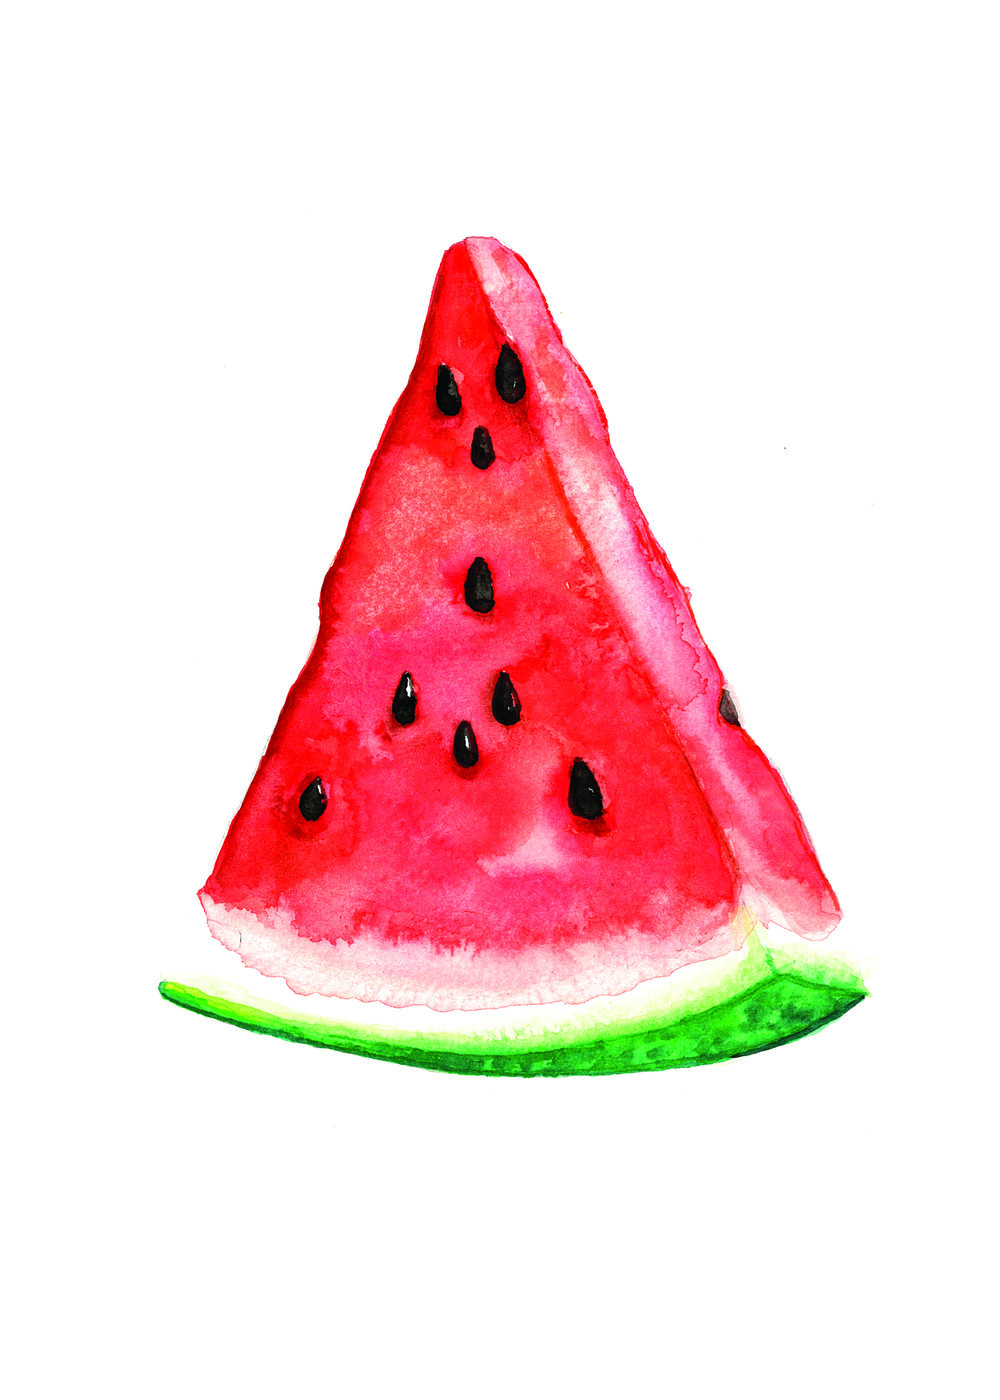 Watermelon_Portrait.jpg